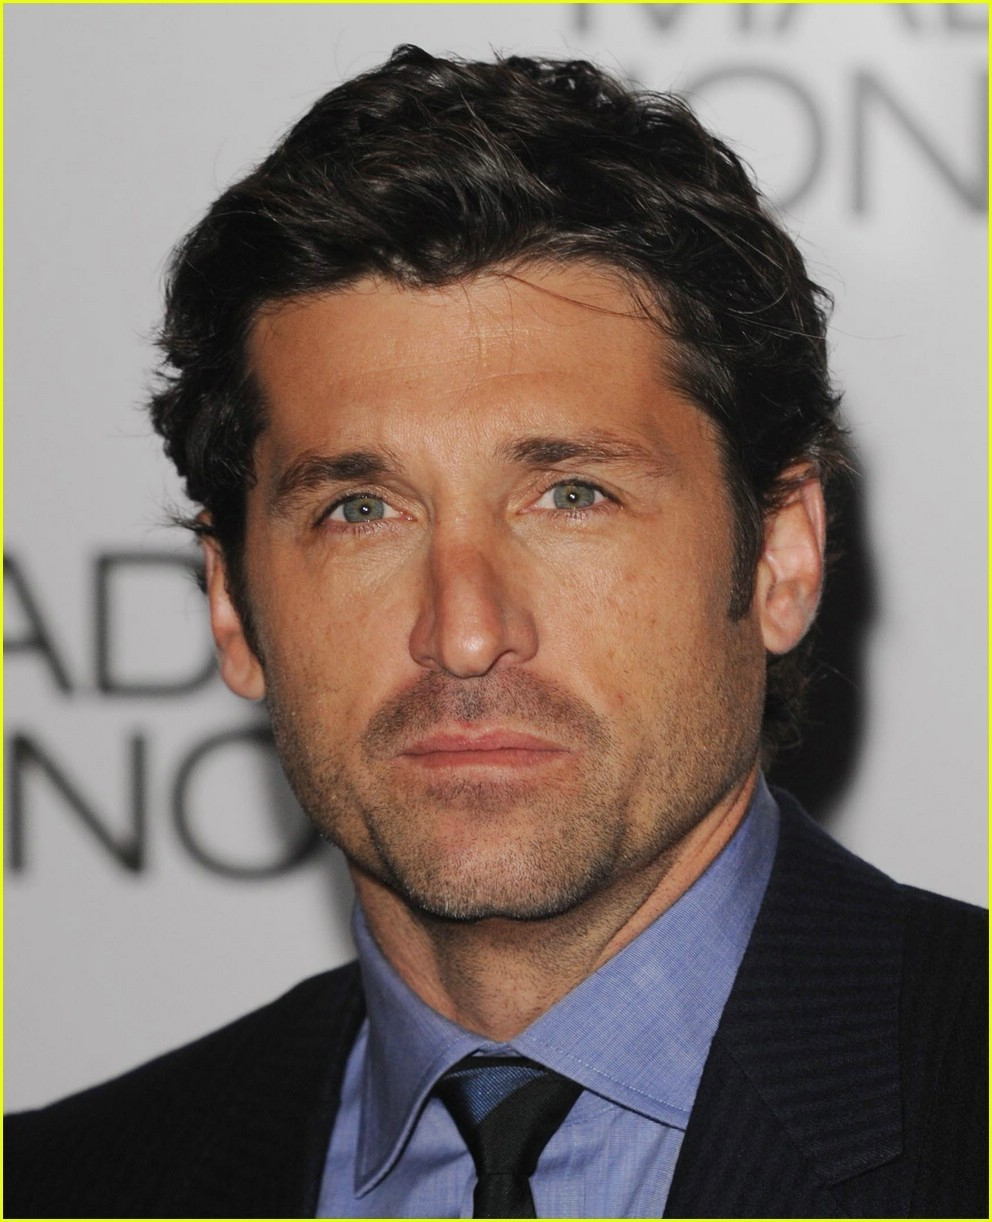 Dr Derek Shepherd Images Patrick Dempsey Hd Wallpaper And